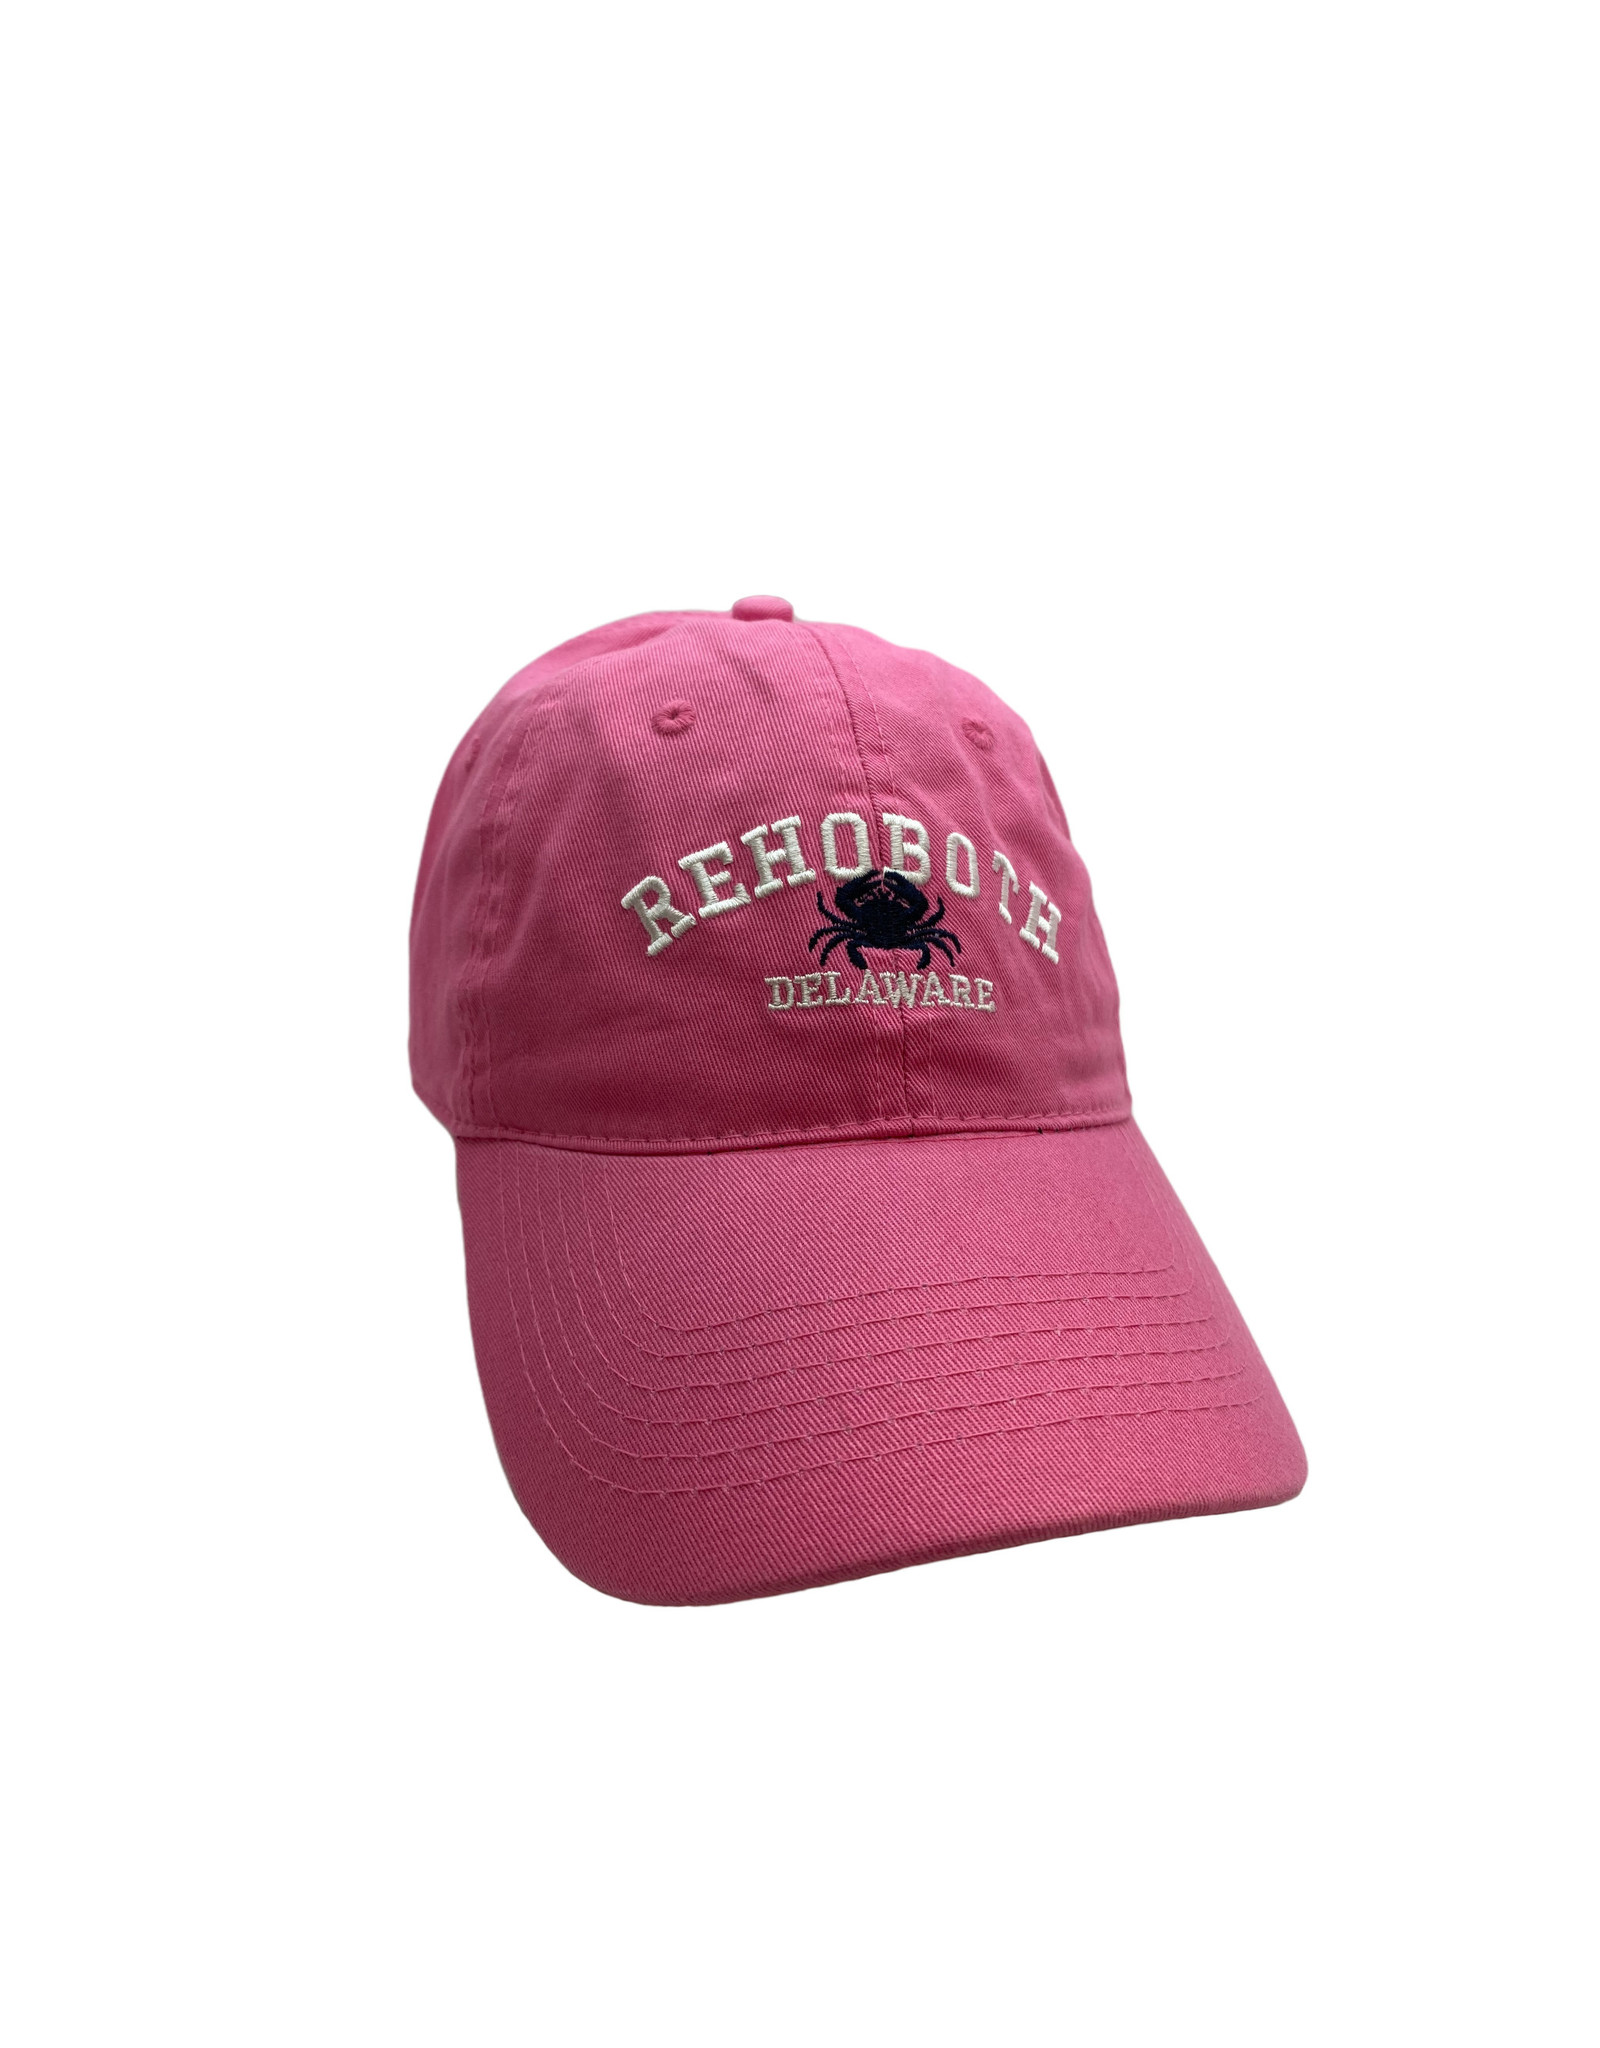 REHOBOTH LIFESTYLE CLASSIC COTTON BEACH HAT ADJUSTABLE OS PINK CRAB